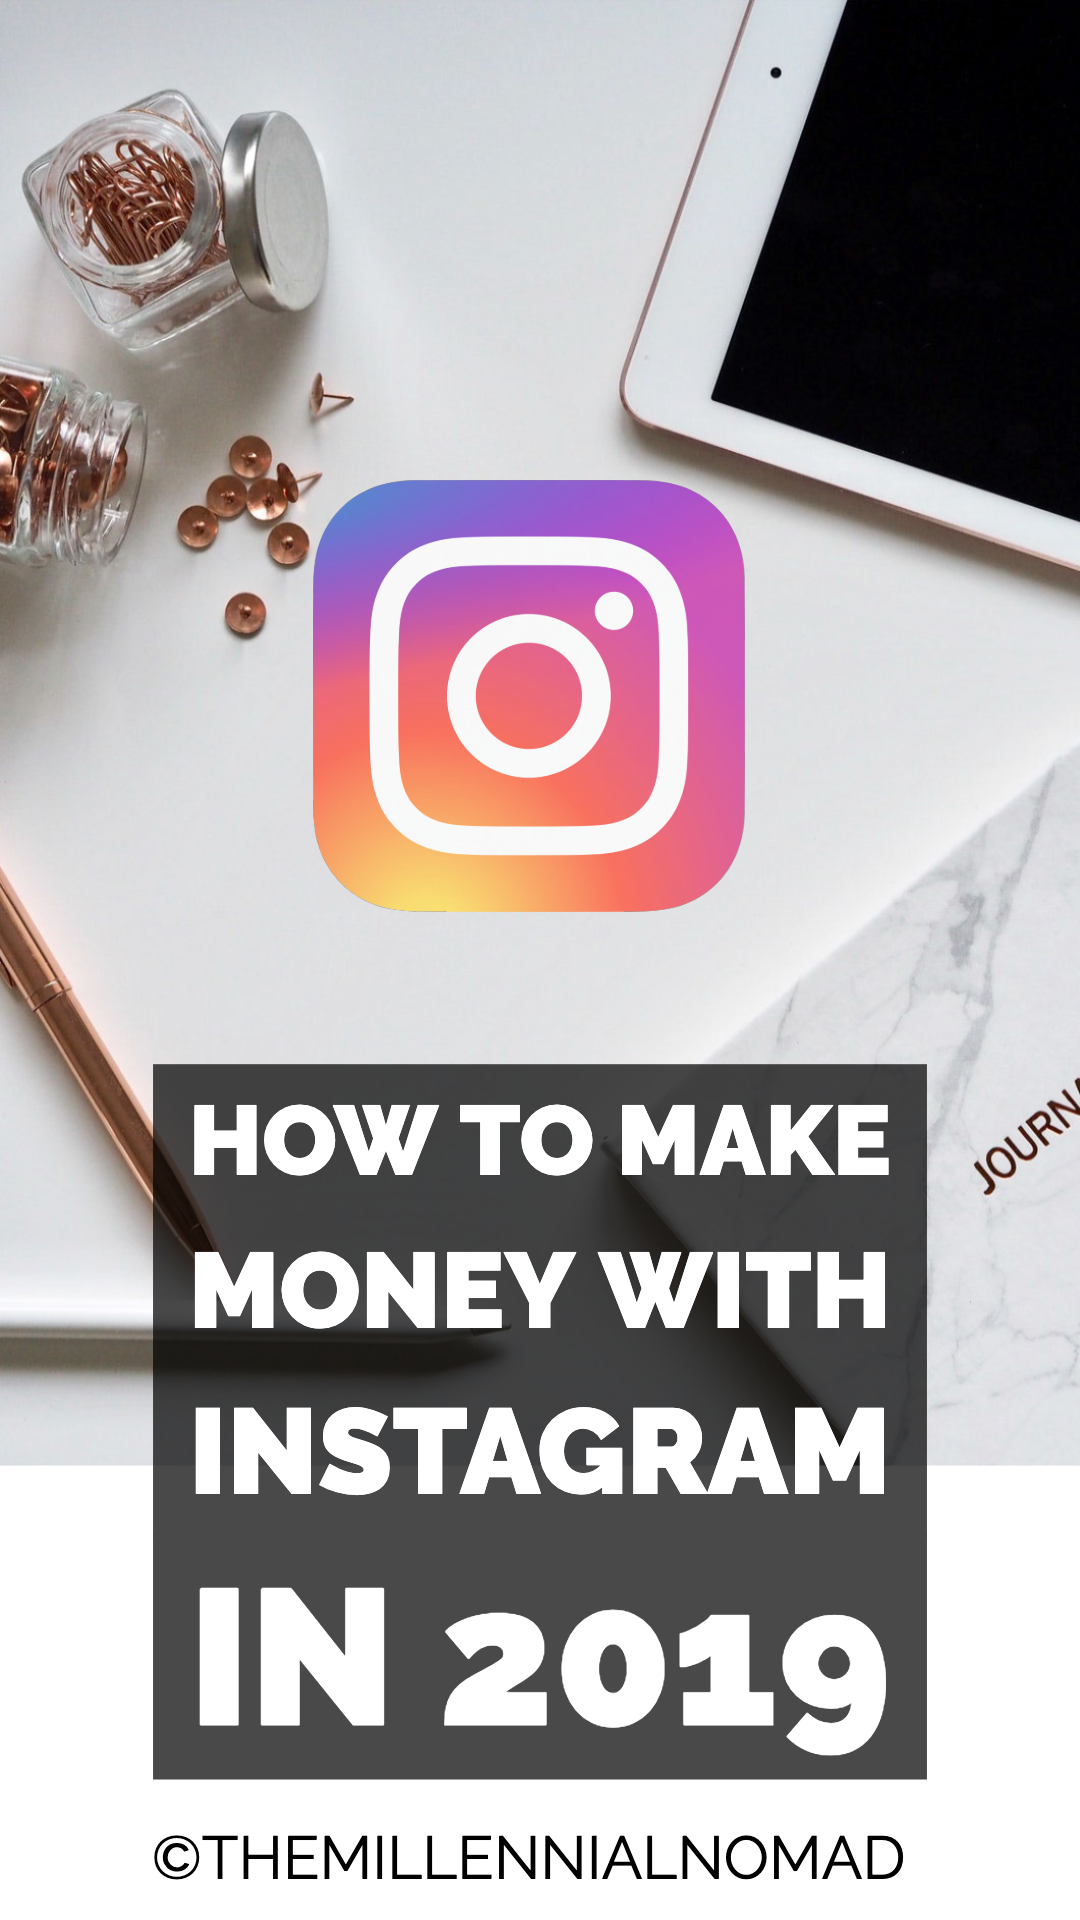 Discover how to make money with Instagram in 2019. #instagramforbusiness #instagrammarketing #instagramtips